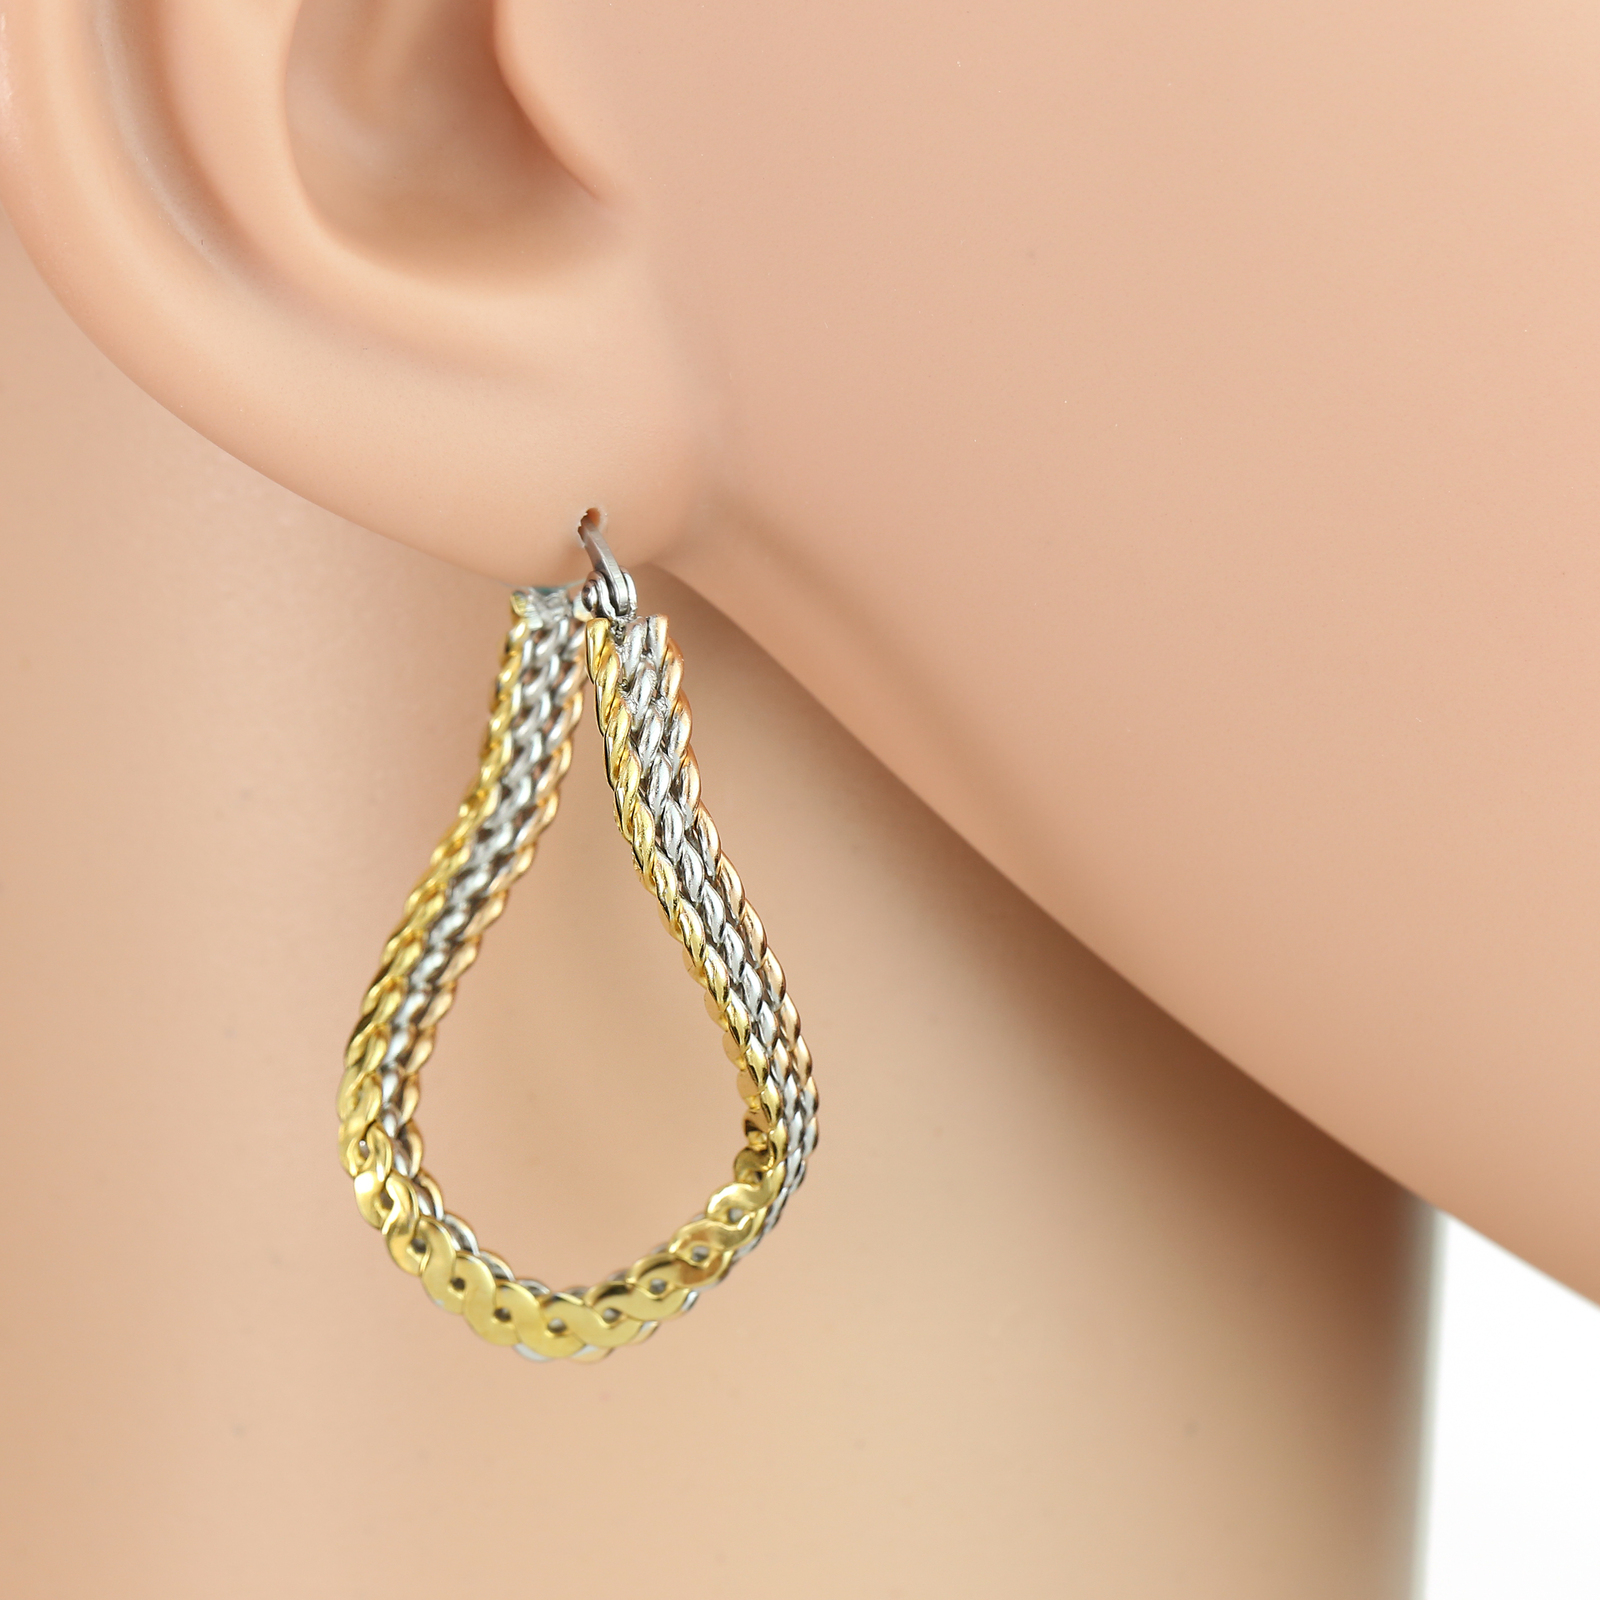 Unique Tri-Color Silver, Gold & Rose Tone Hoop Earrings- United Elegance